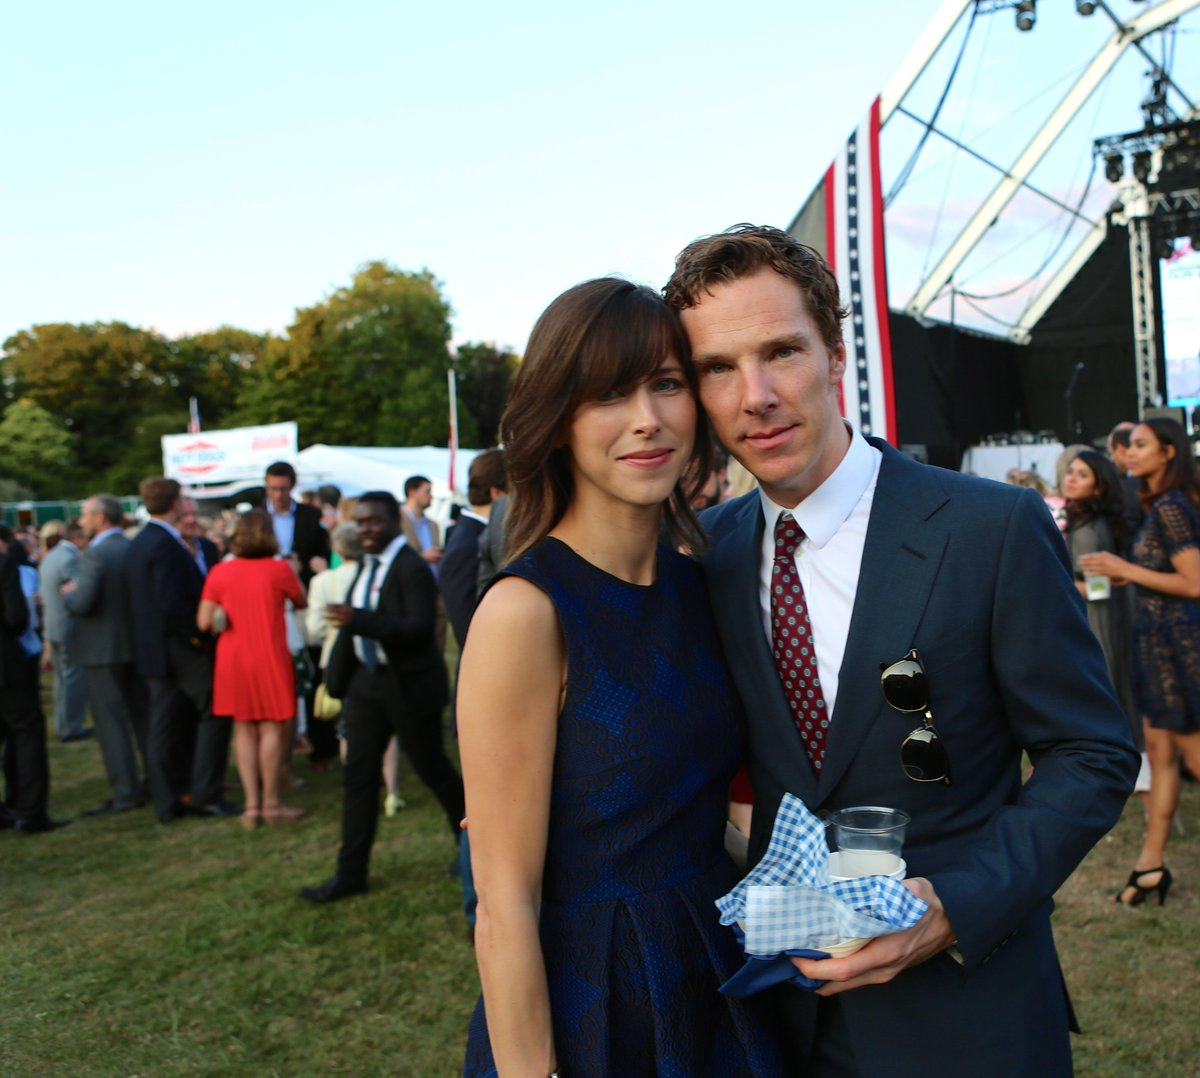 Thrilled to celebrate our national day with a certain Mr Cumberbatch and Sophie Hunter. #J4Winfield http://t.co/t6jUDg1Elp